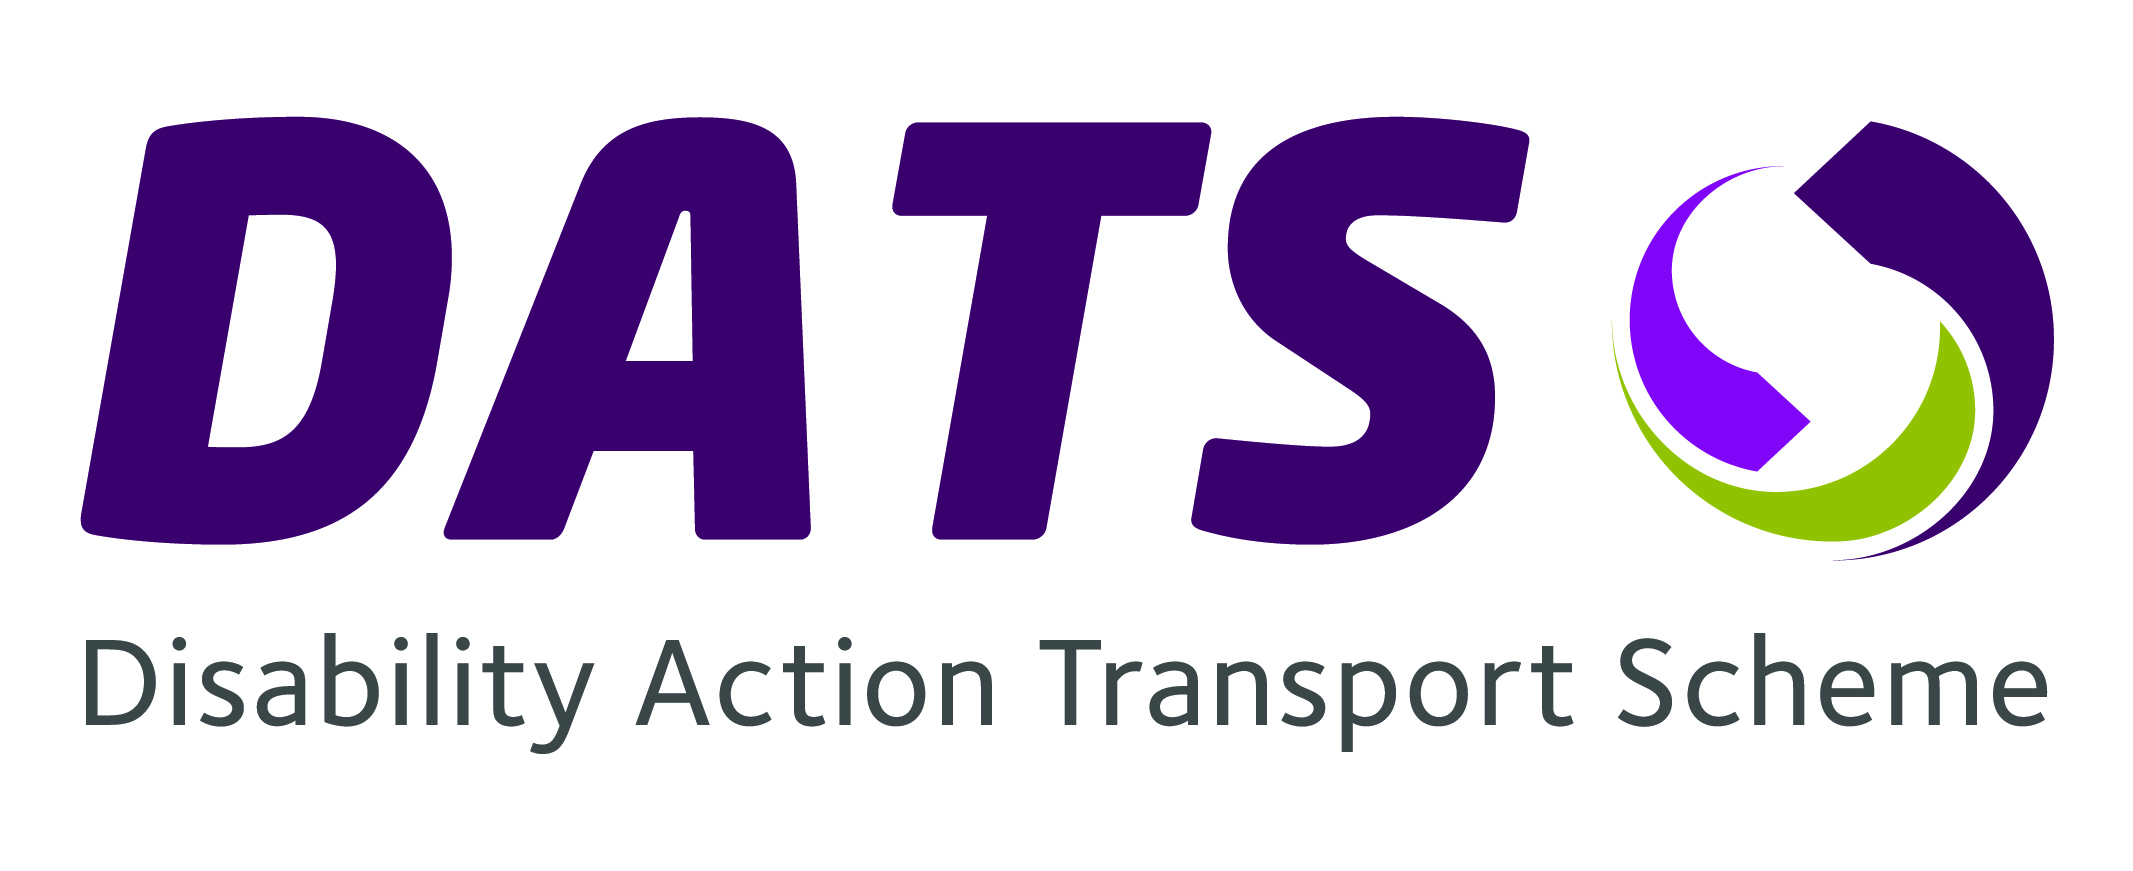 DATS Logo: Disability Action Transport Scheme